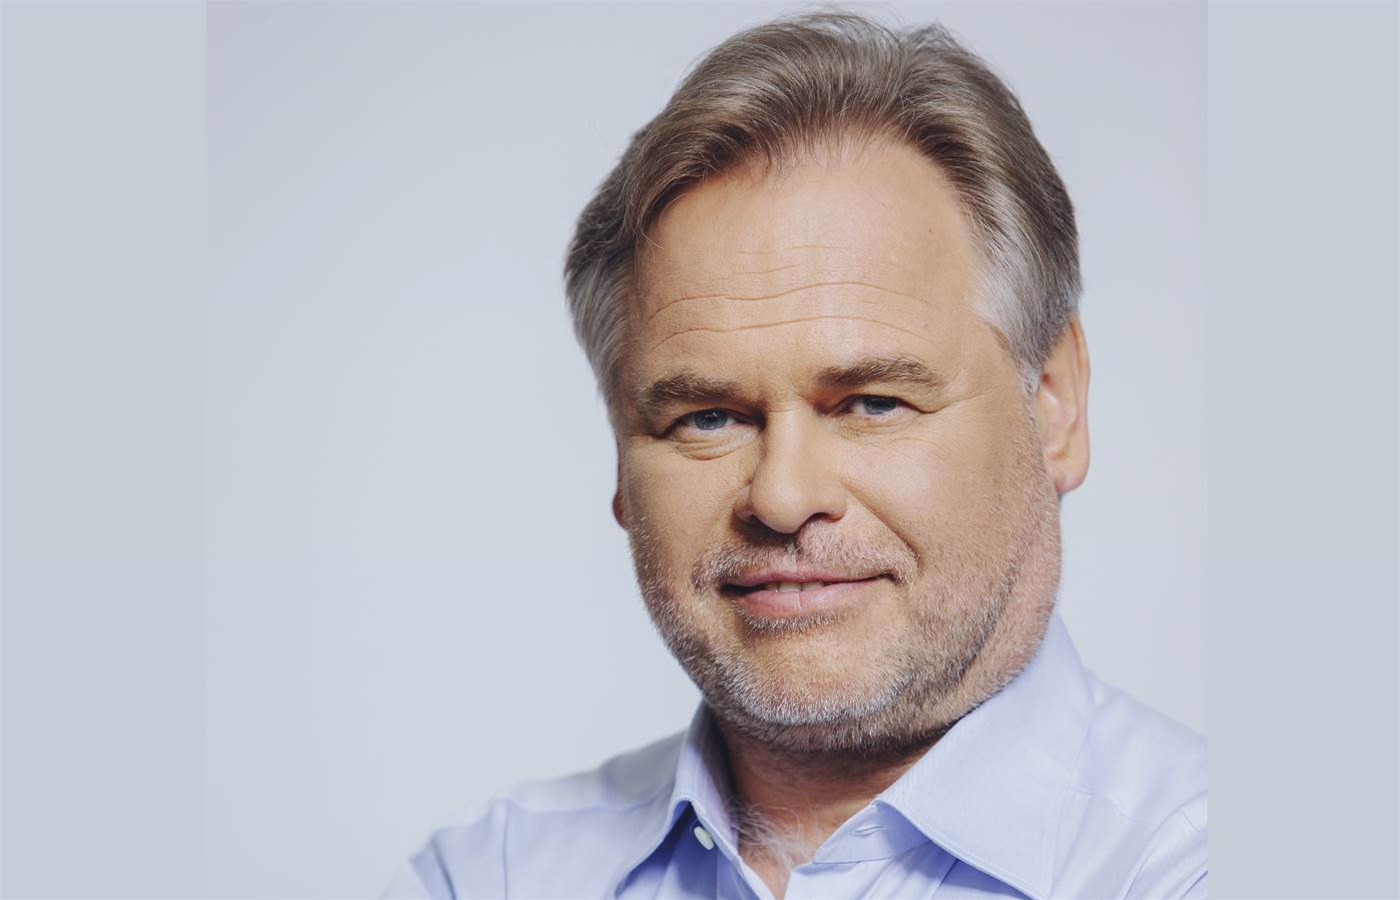 Kaspersky freezes European projects to protest EU ban